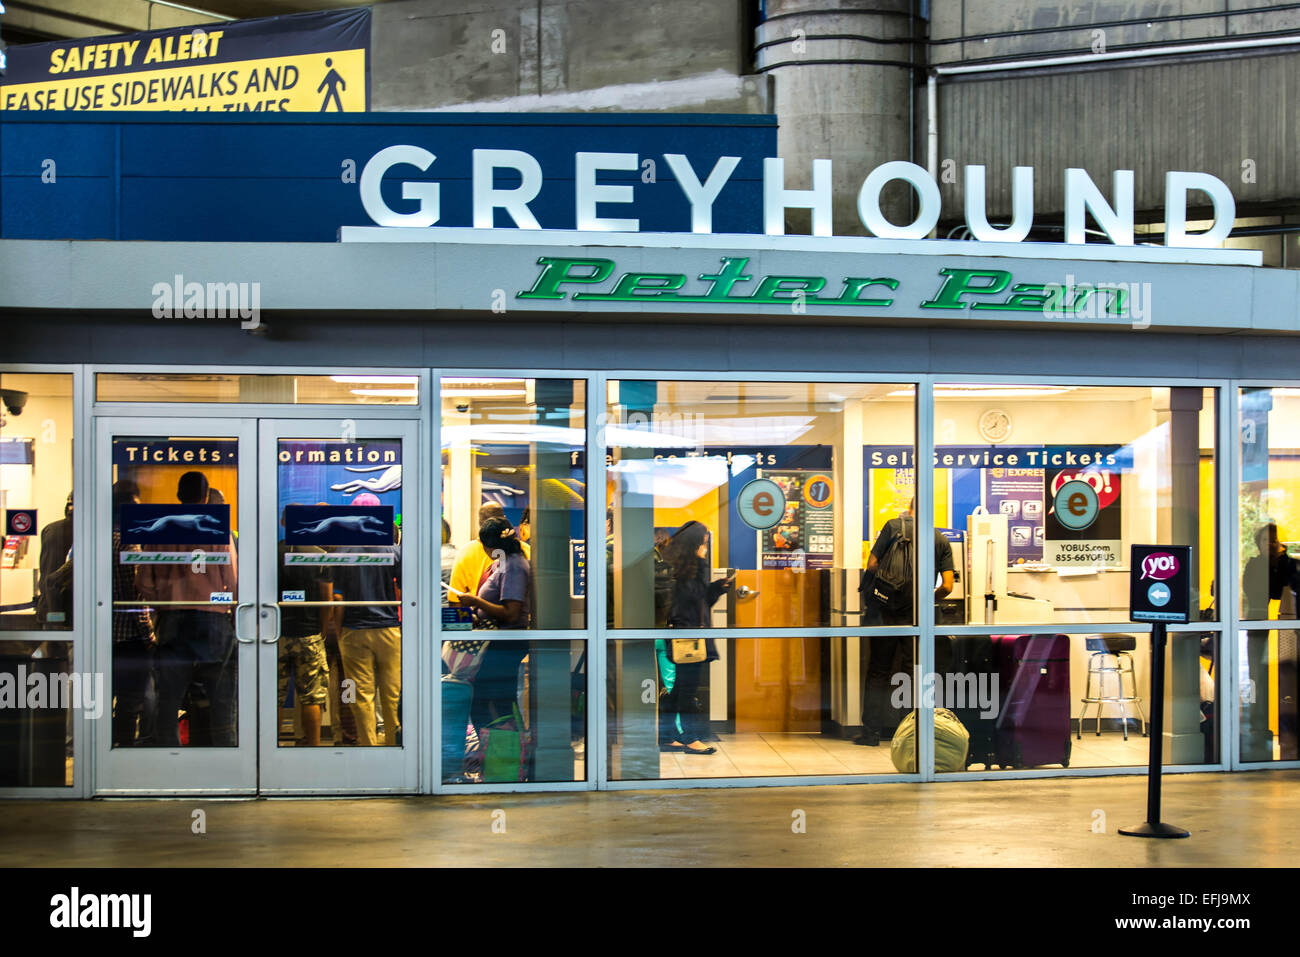 greyhound bus station usa stock photos greyhound bus. Black Bedroom Furniture Sets. Home Design Ideas